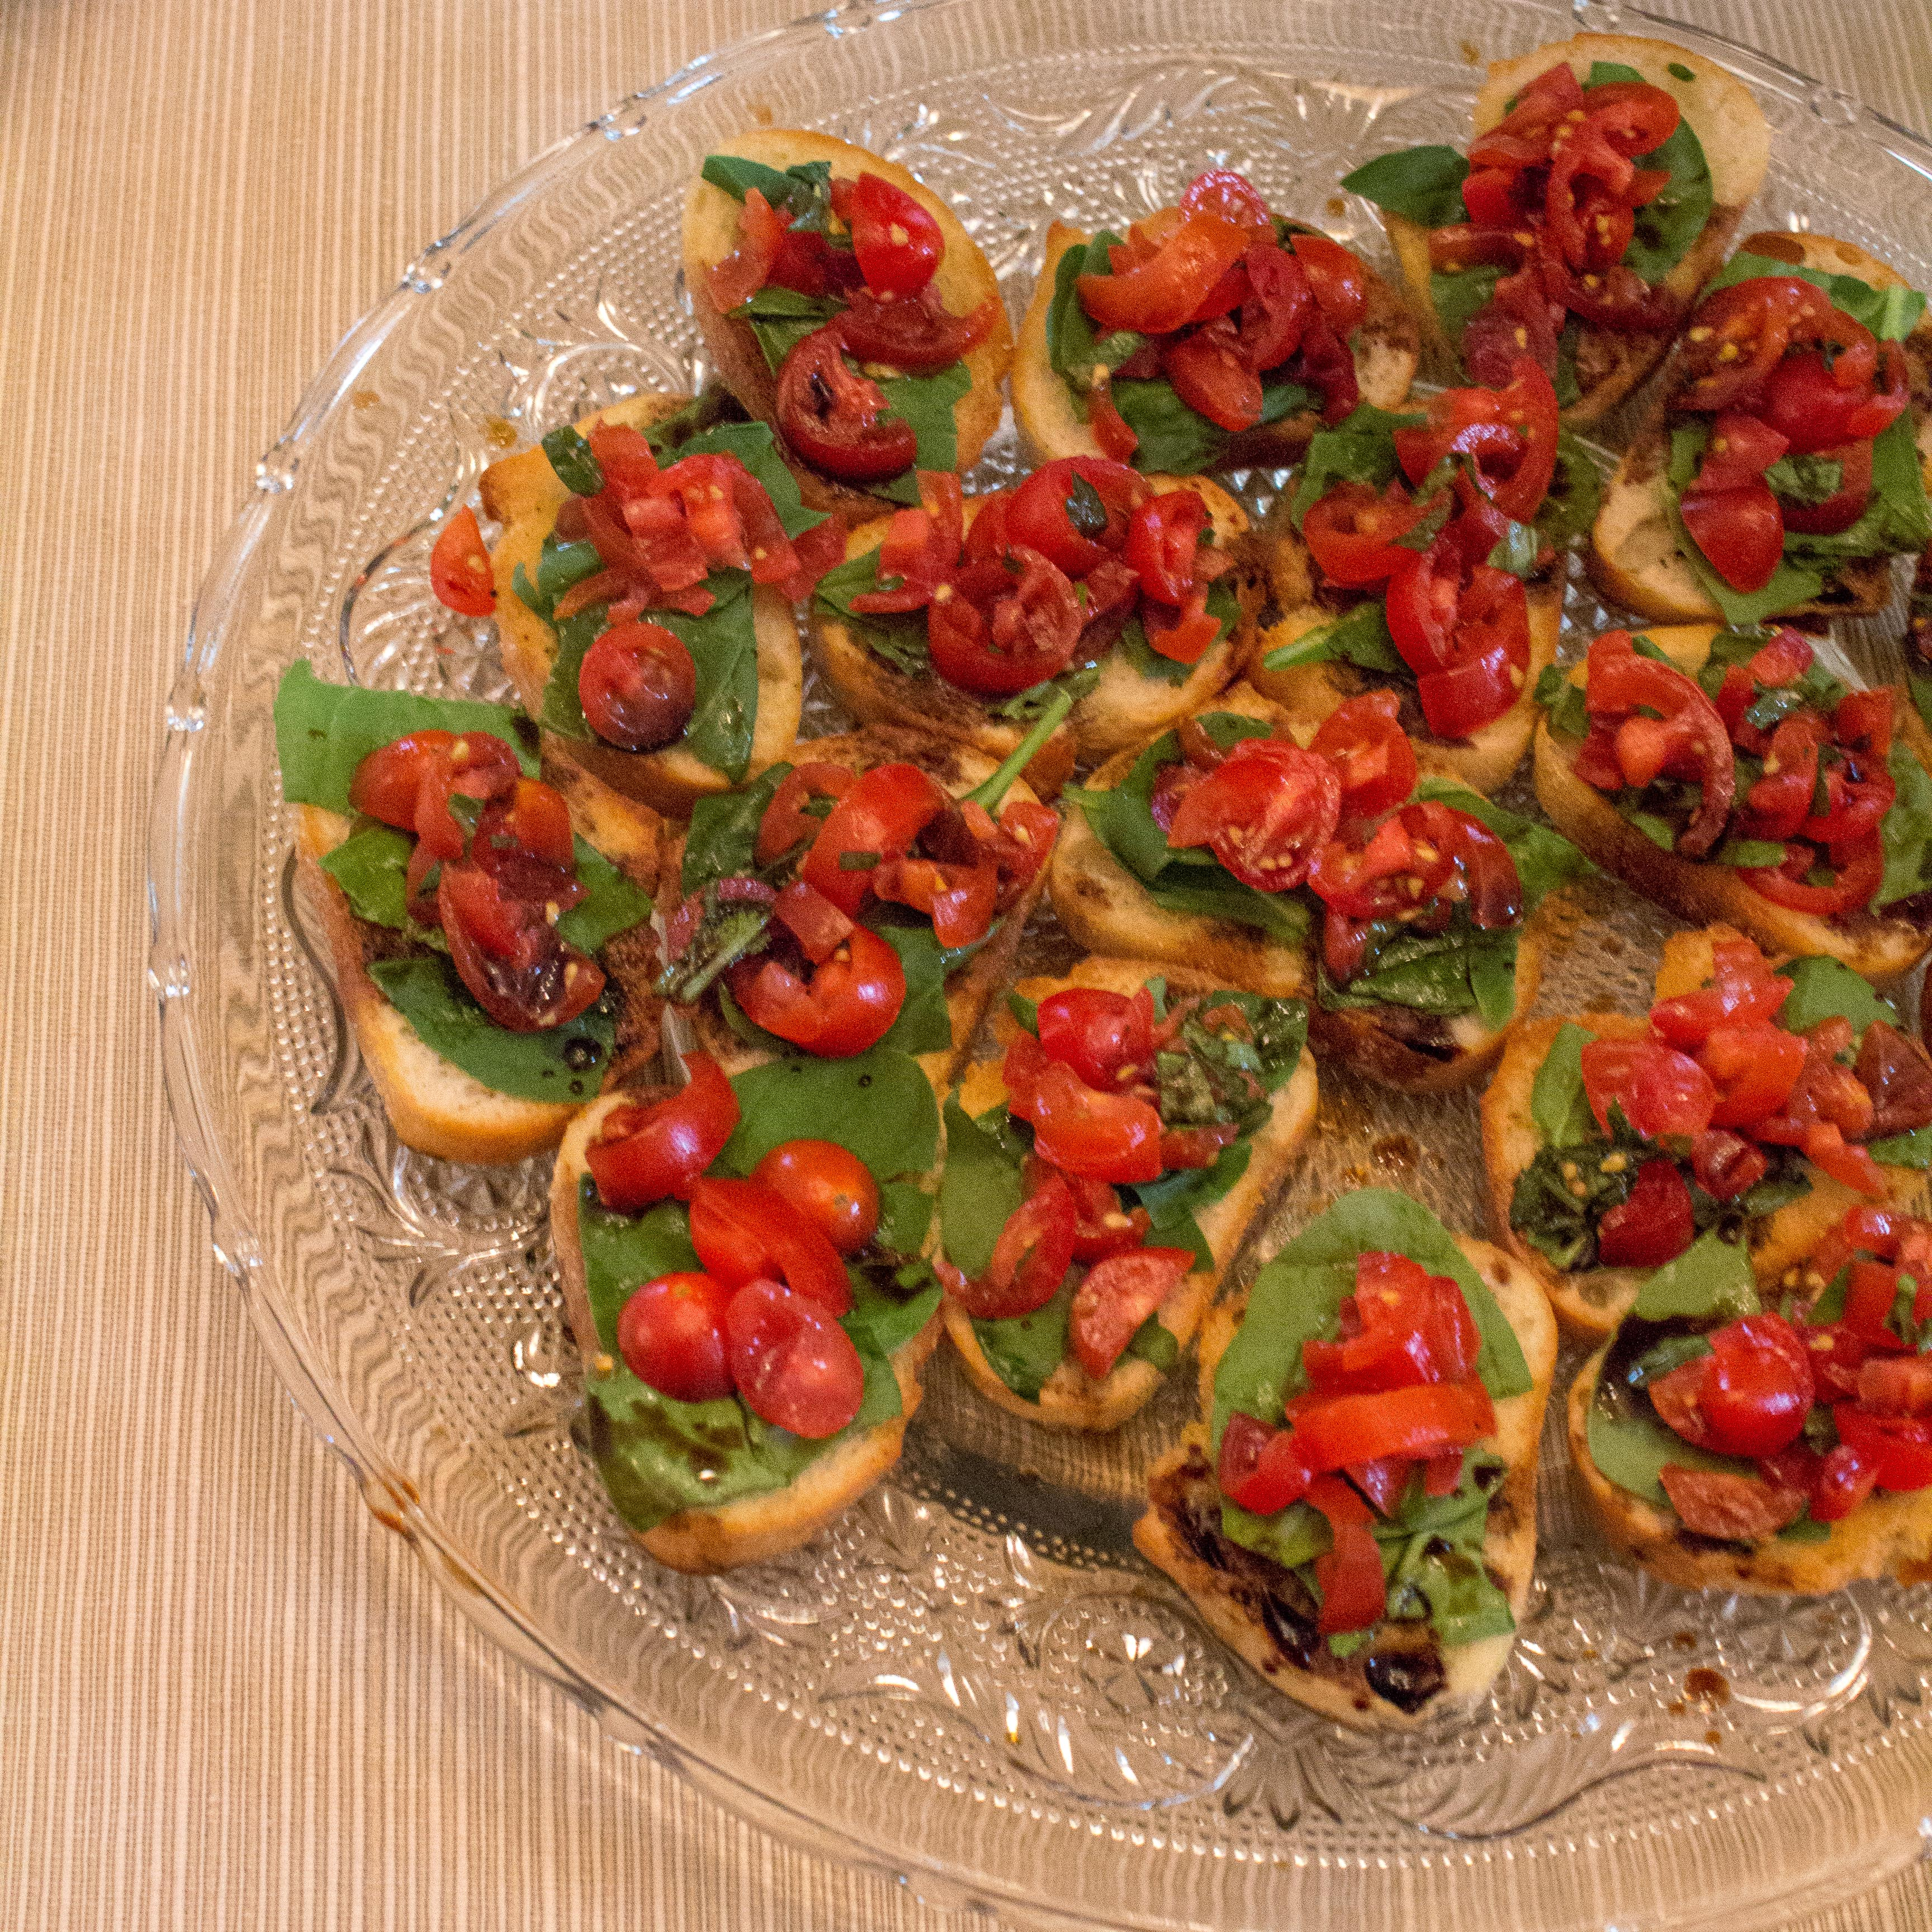 Bruschetta makes for a fresh summer appetizer, made even better by ingredients straight from the garden! | Teaspoon of Nose